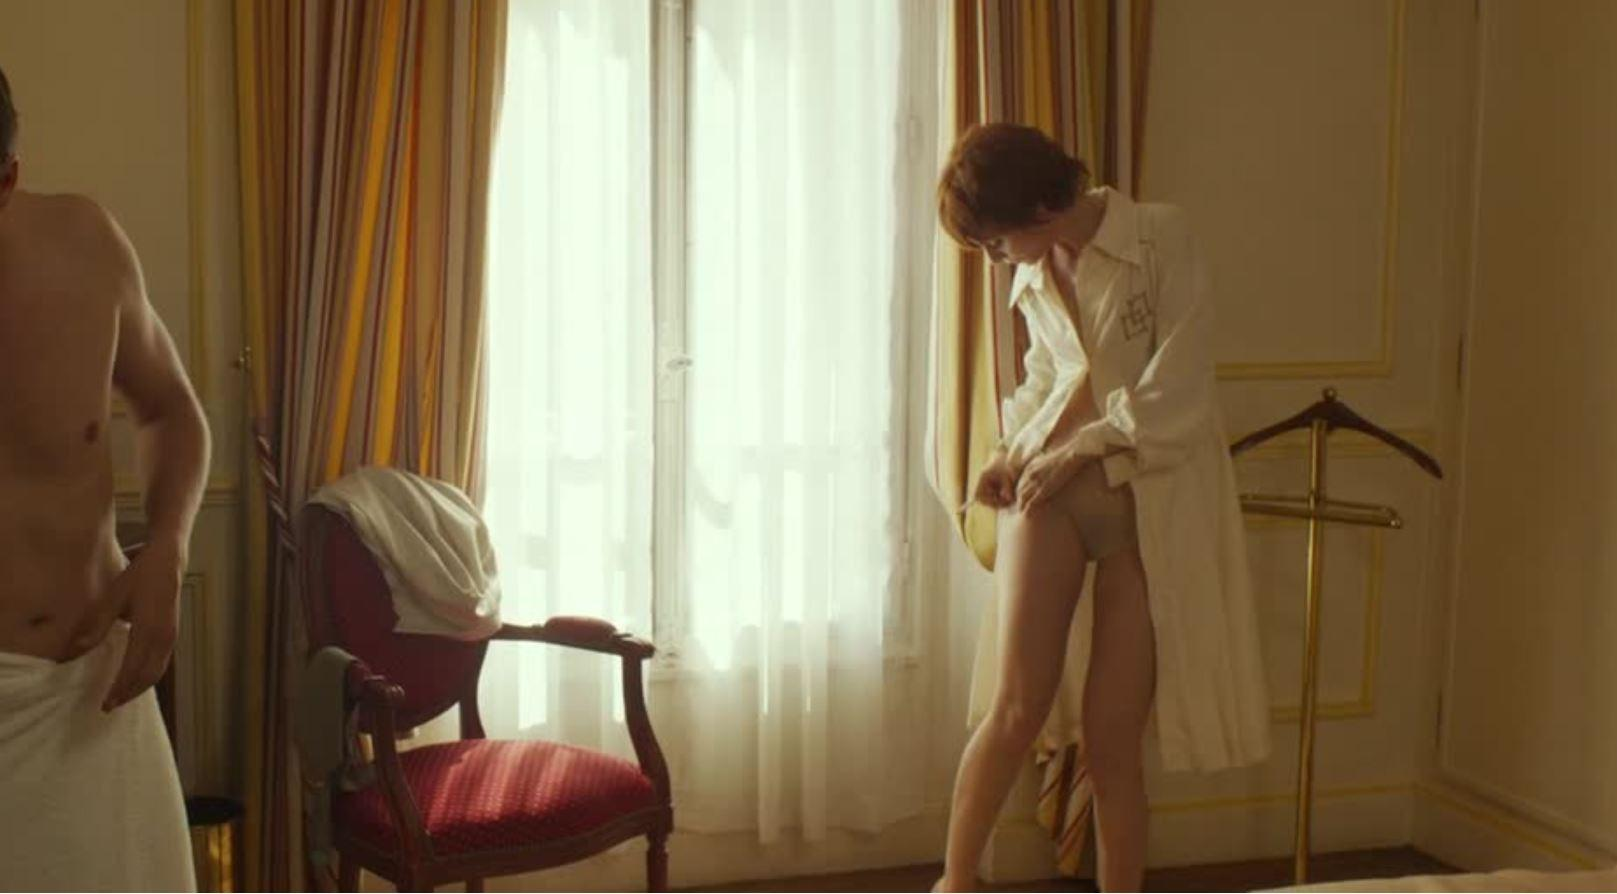 Adele haenel nude in the name of not my daughter 2014 - 1 part 9